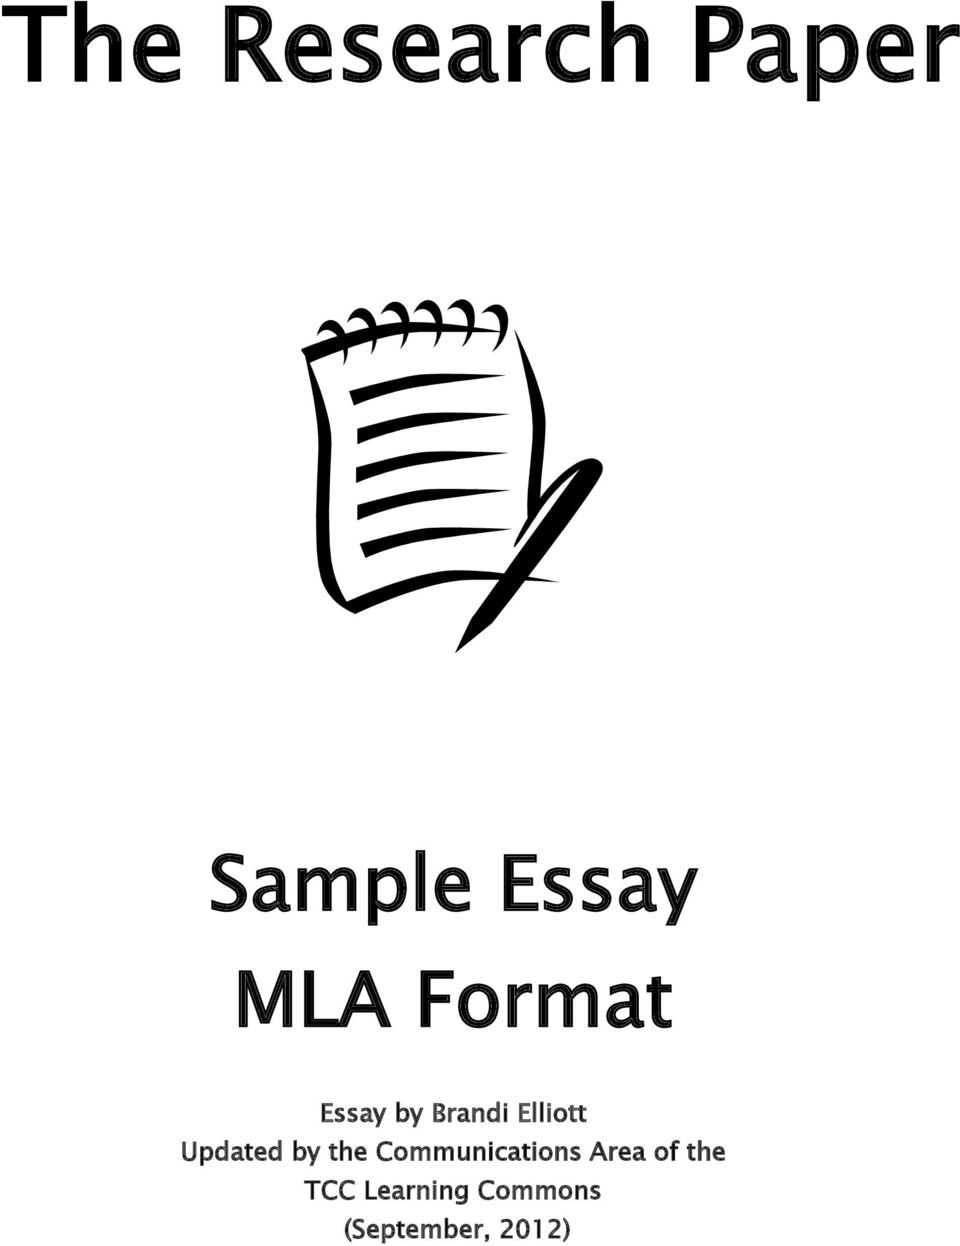 The Research Paper Sample Essay Mla Format Essay By Brandi Elliott  Updated By The Communications Area An Essay On Newspaper also Compare And Contrast Essay On High School And College  Book Reports Writers